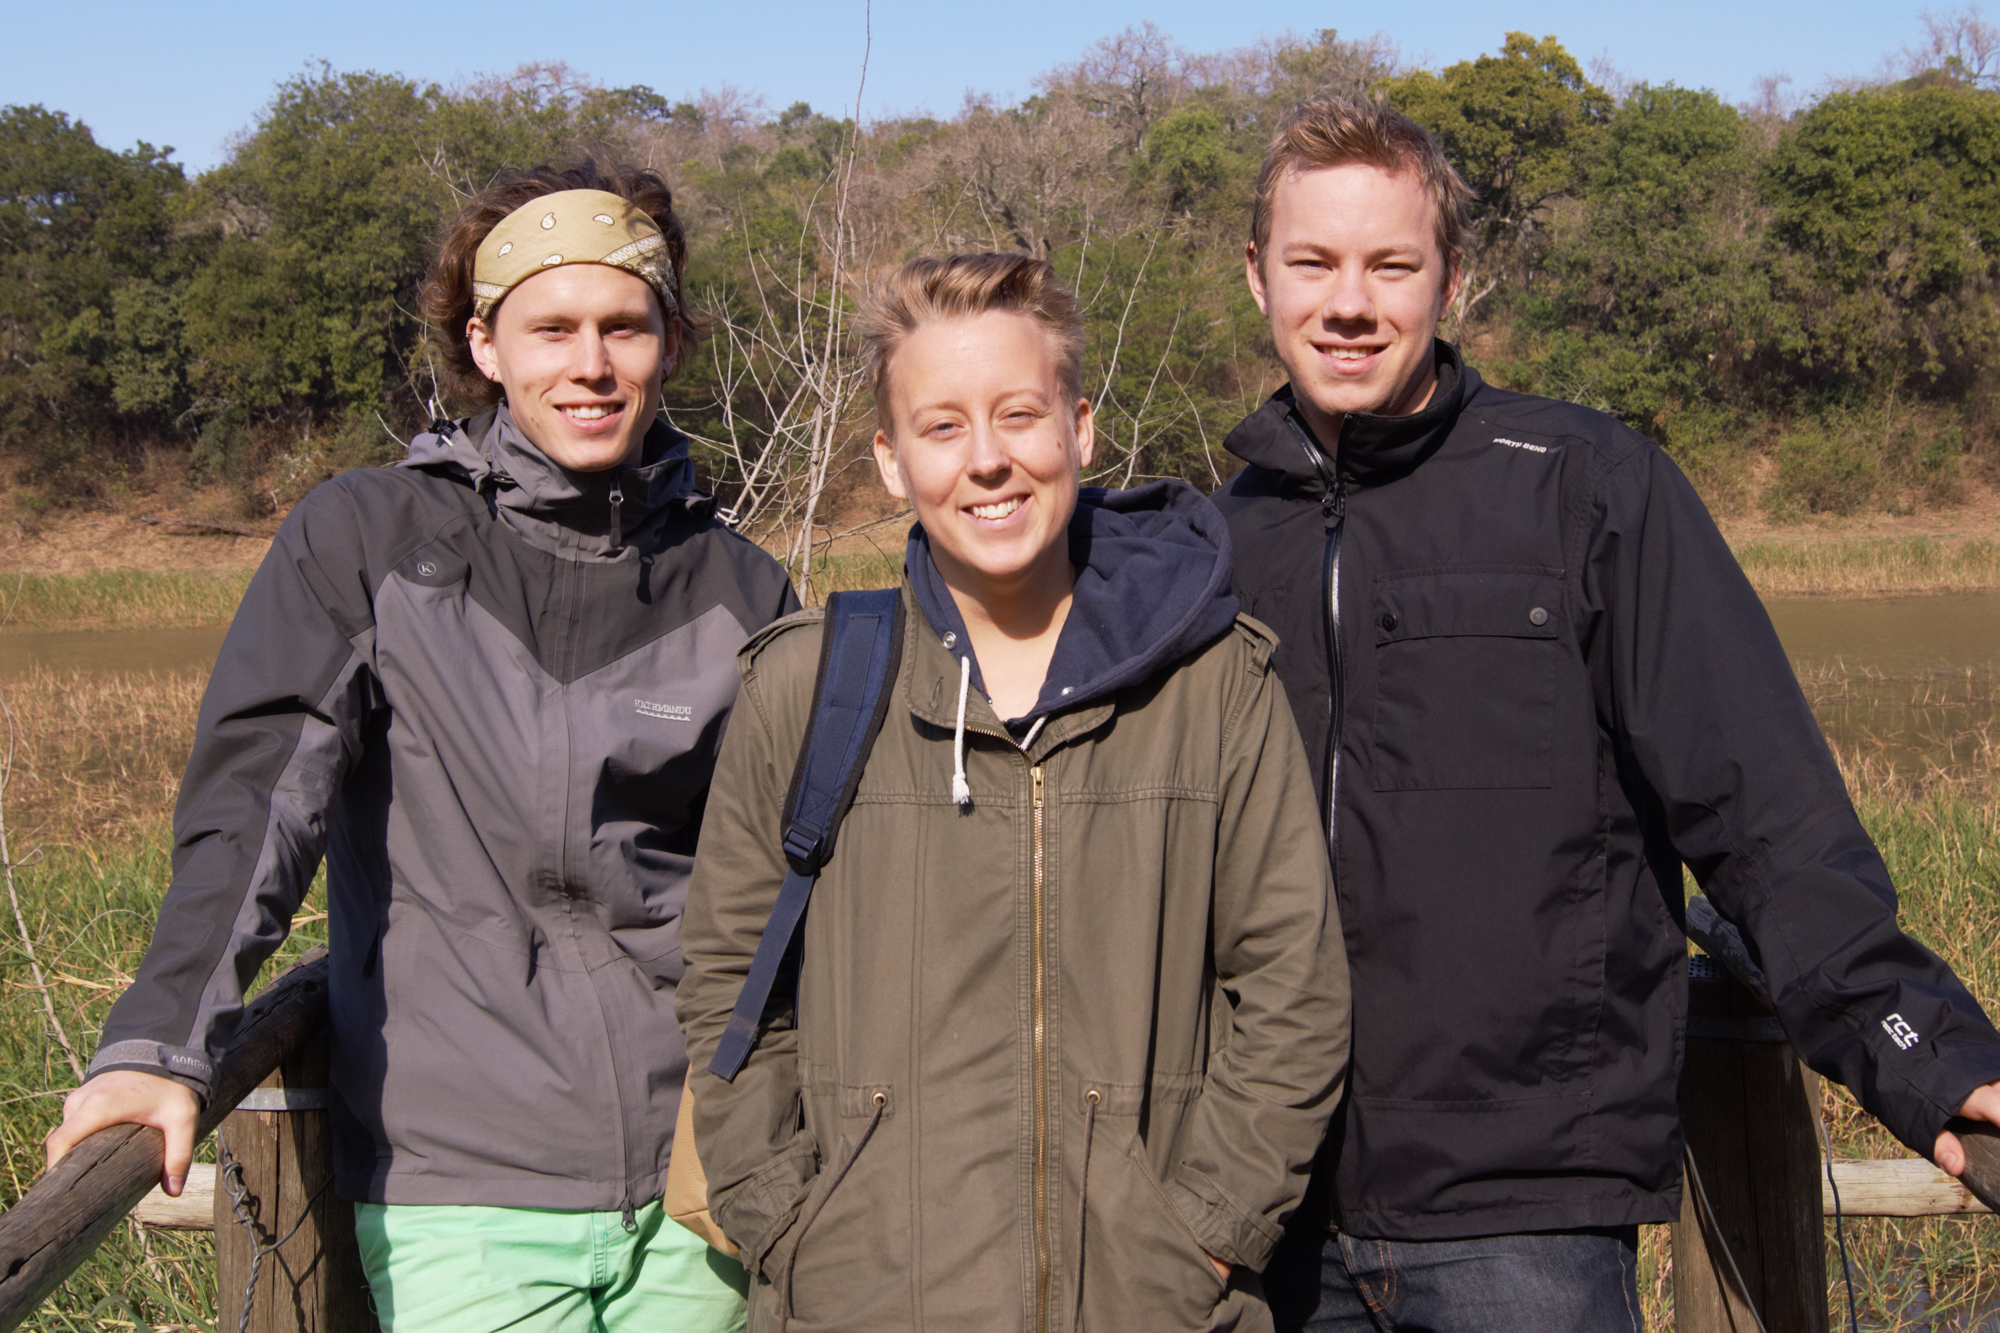 From left to right: Daniel, Hedvig and Tomas.